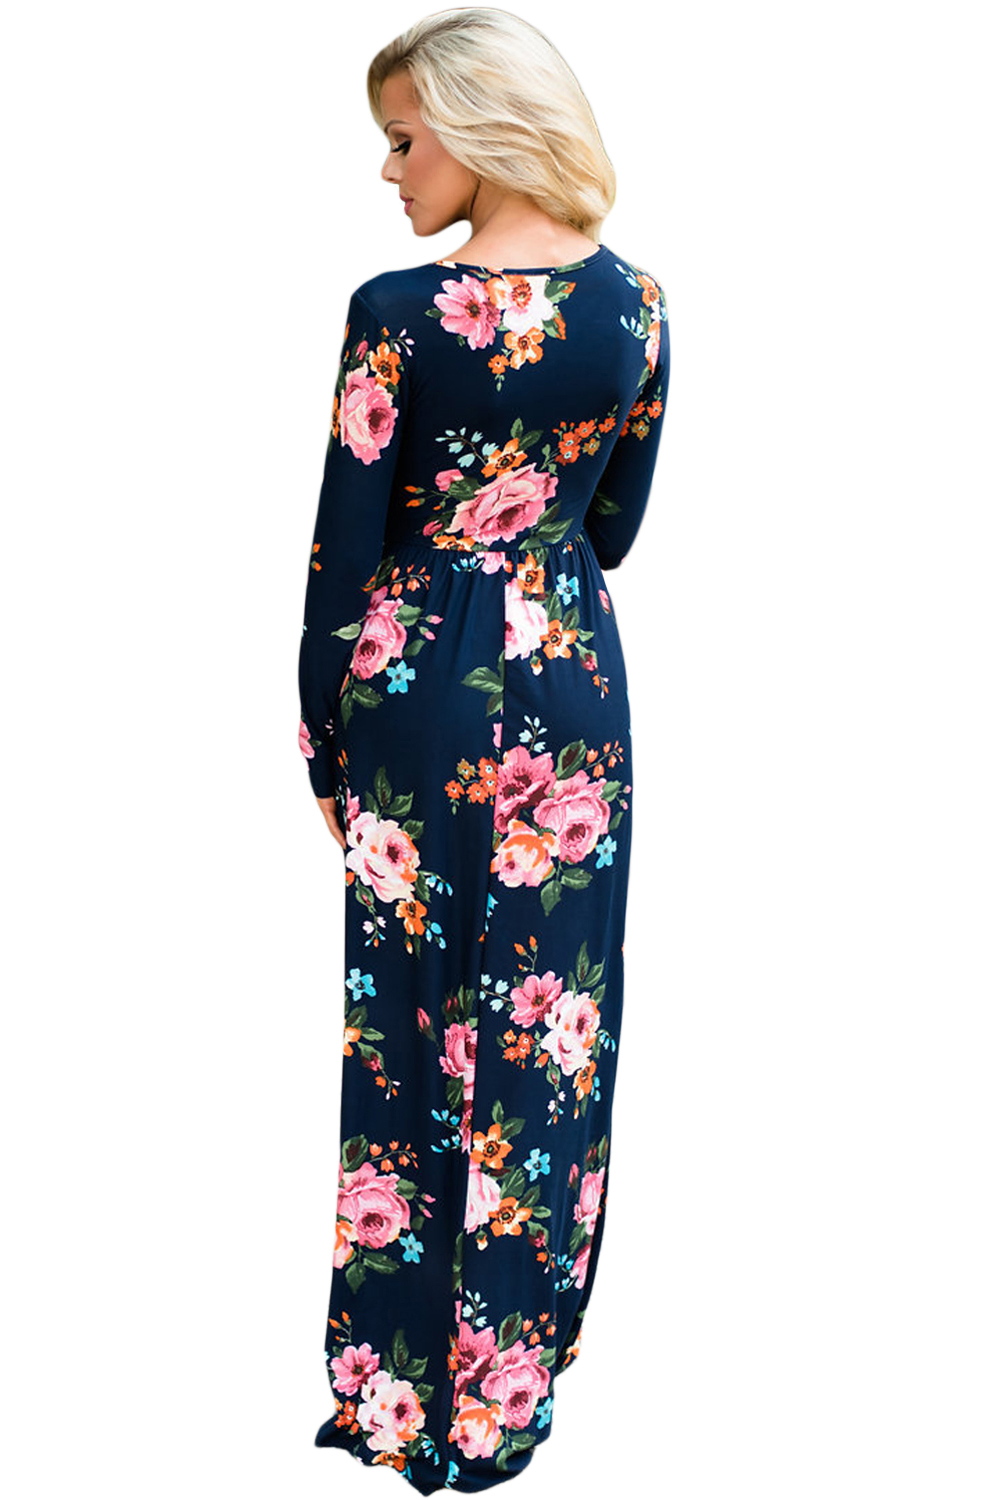 BY61772-5 Navy Floral Surplice Long Sleeve Maxi Boho Dress